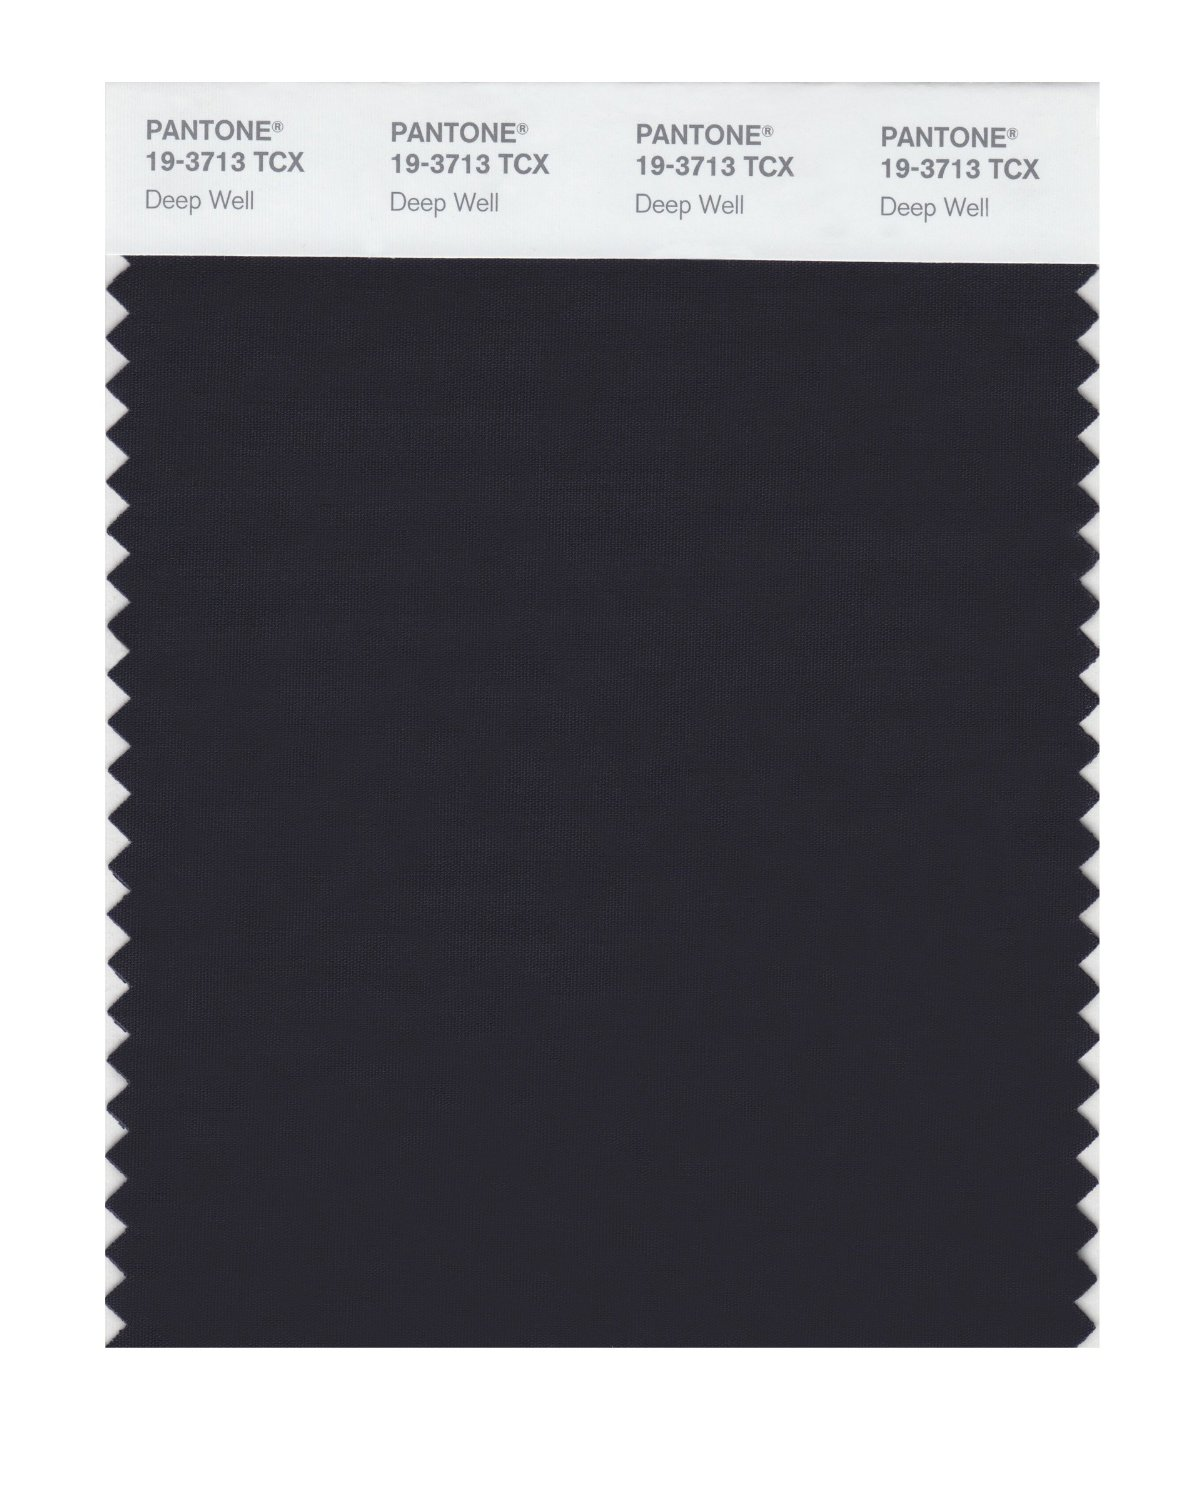 Pantone Smart Swatch 19-3713 Deep Well